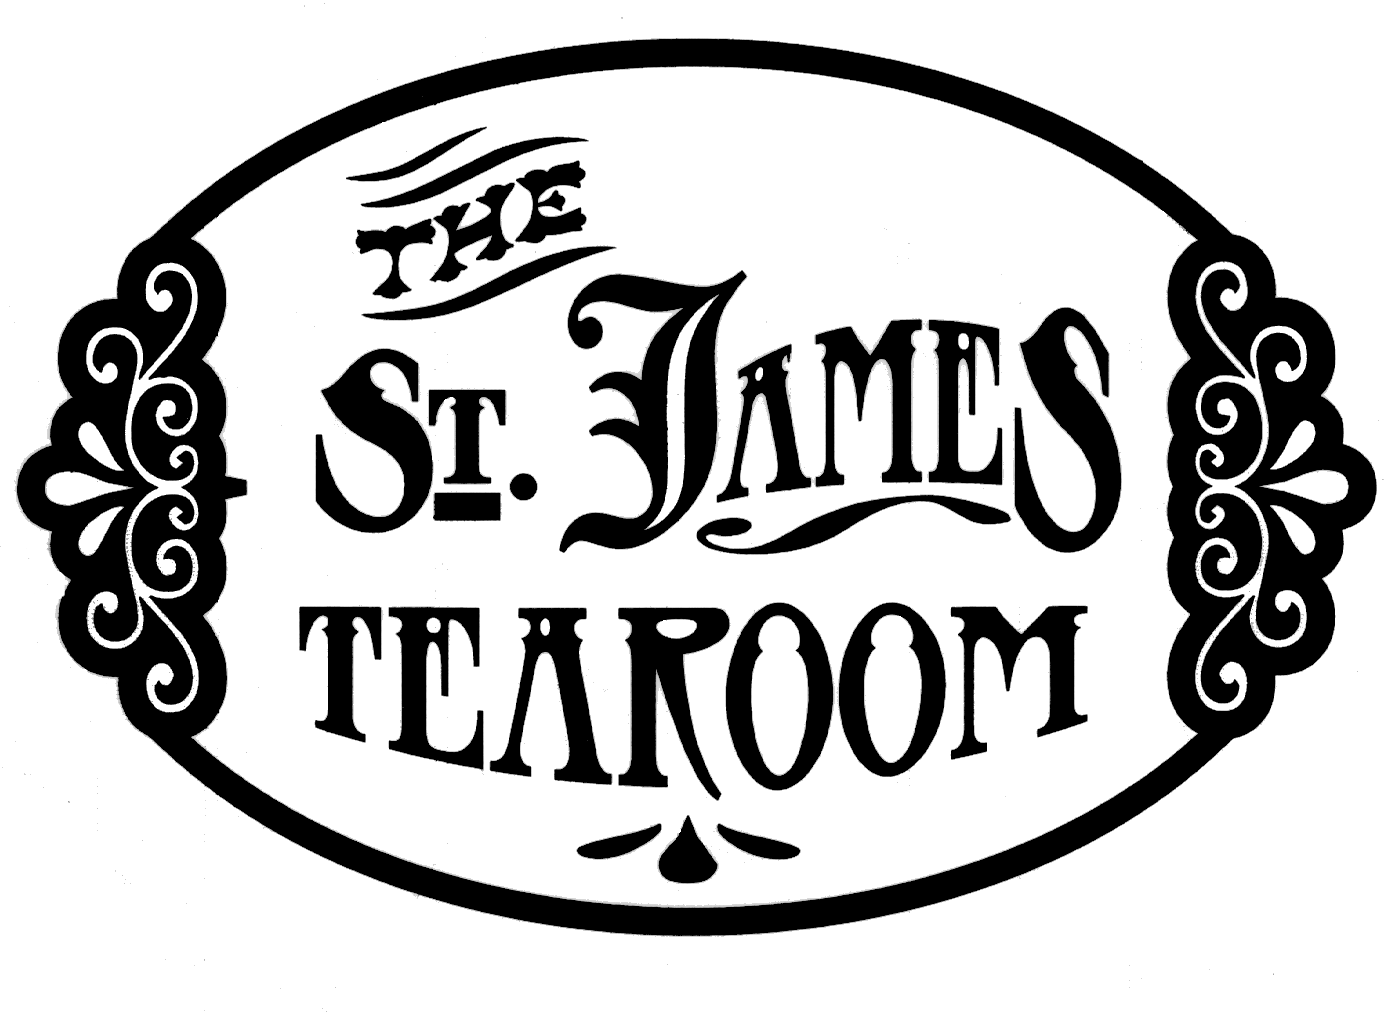 The St. James Tearoom Company Logo